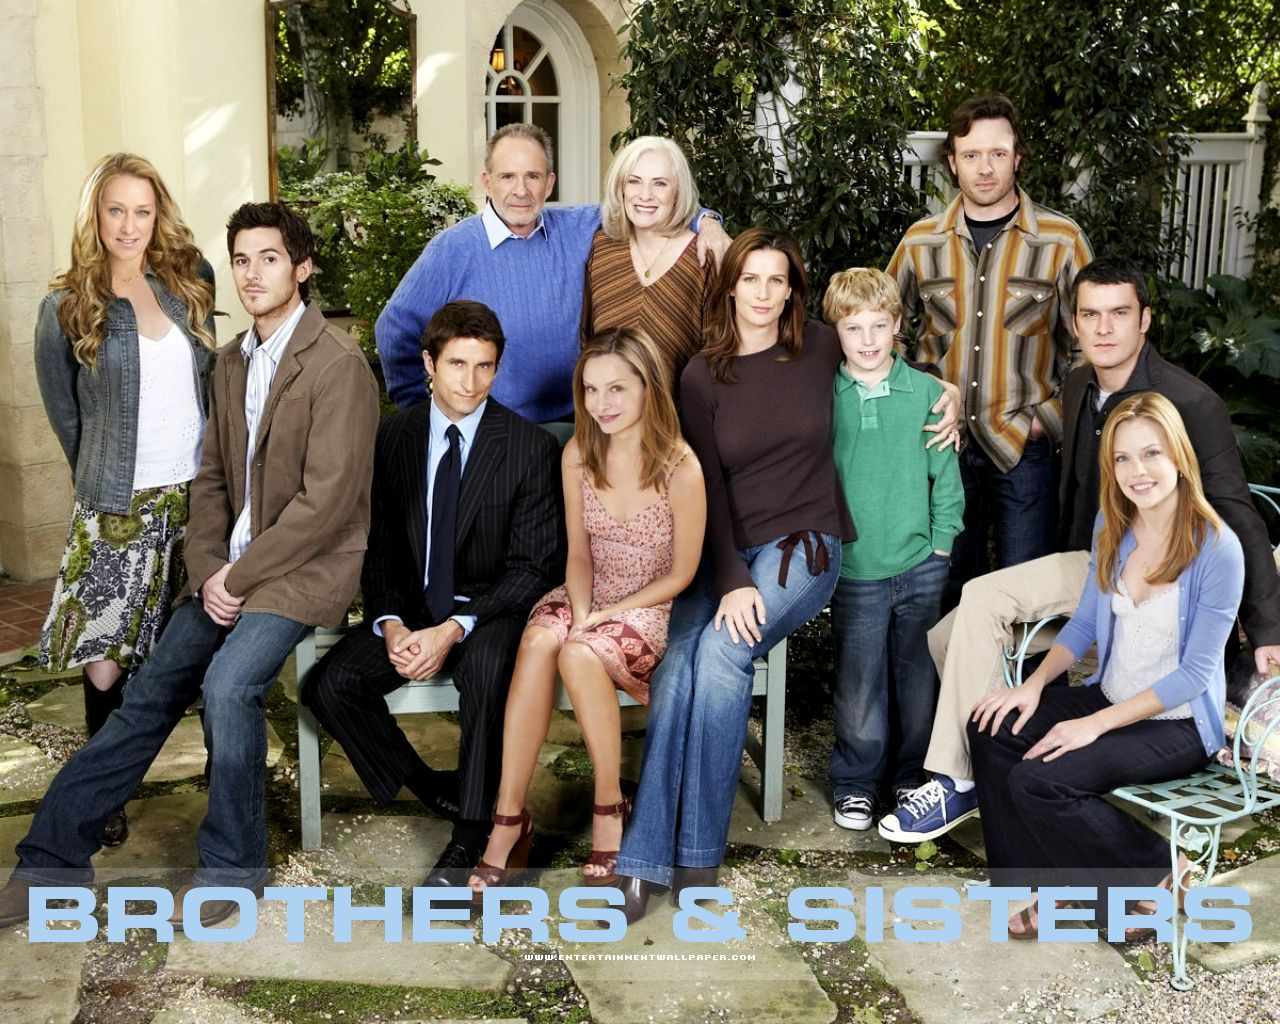 brothers and sisters wallpaper 1280x1024 7jpg 1280x1024